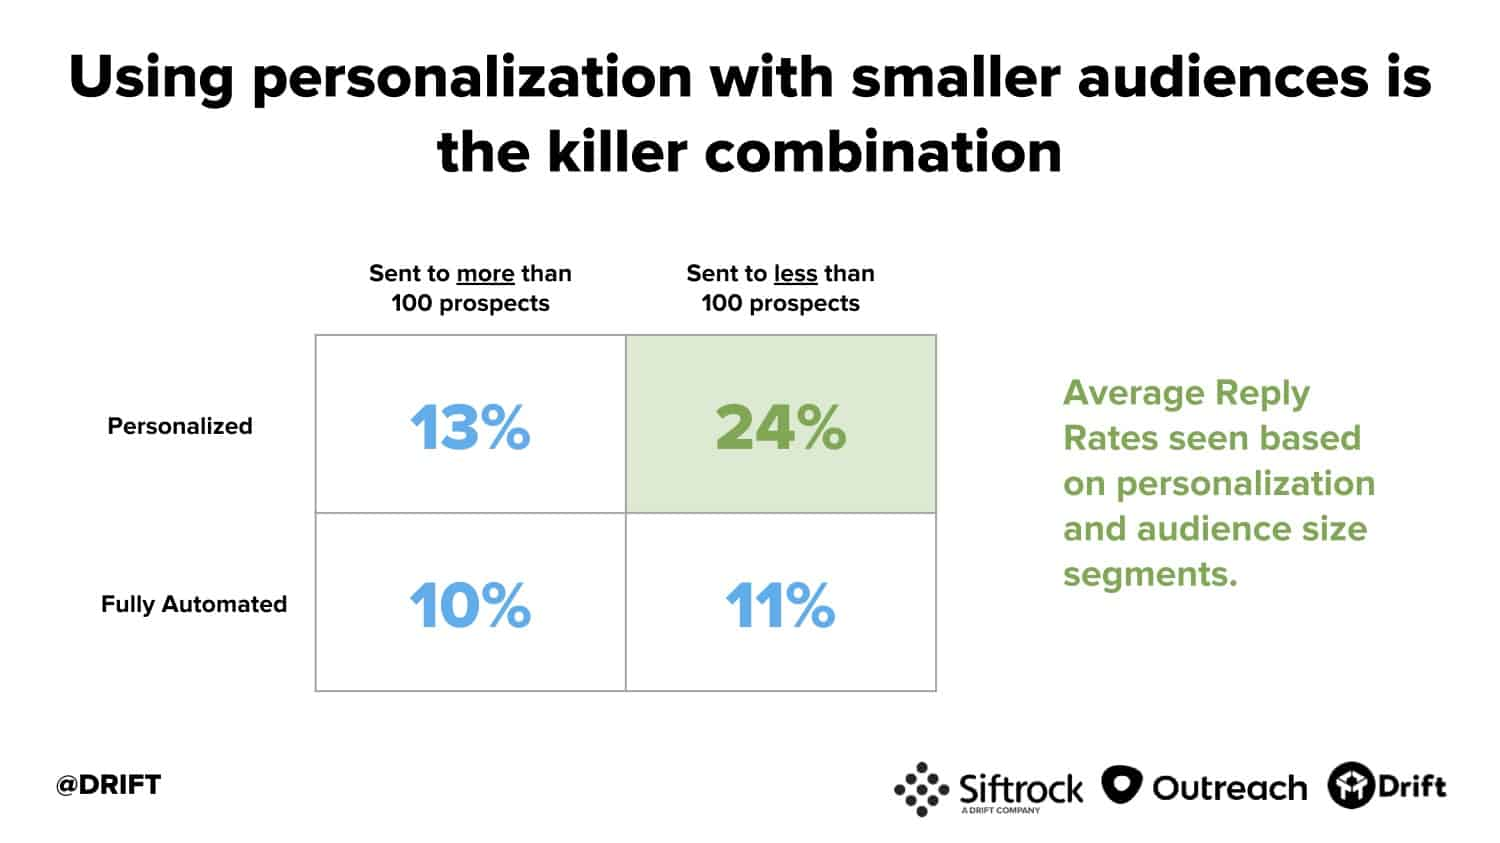 Drift cold email study personalization and smaller audience